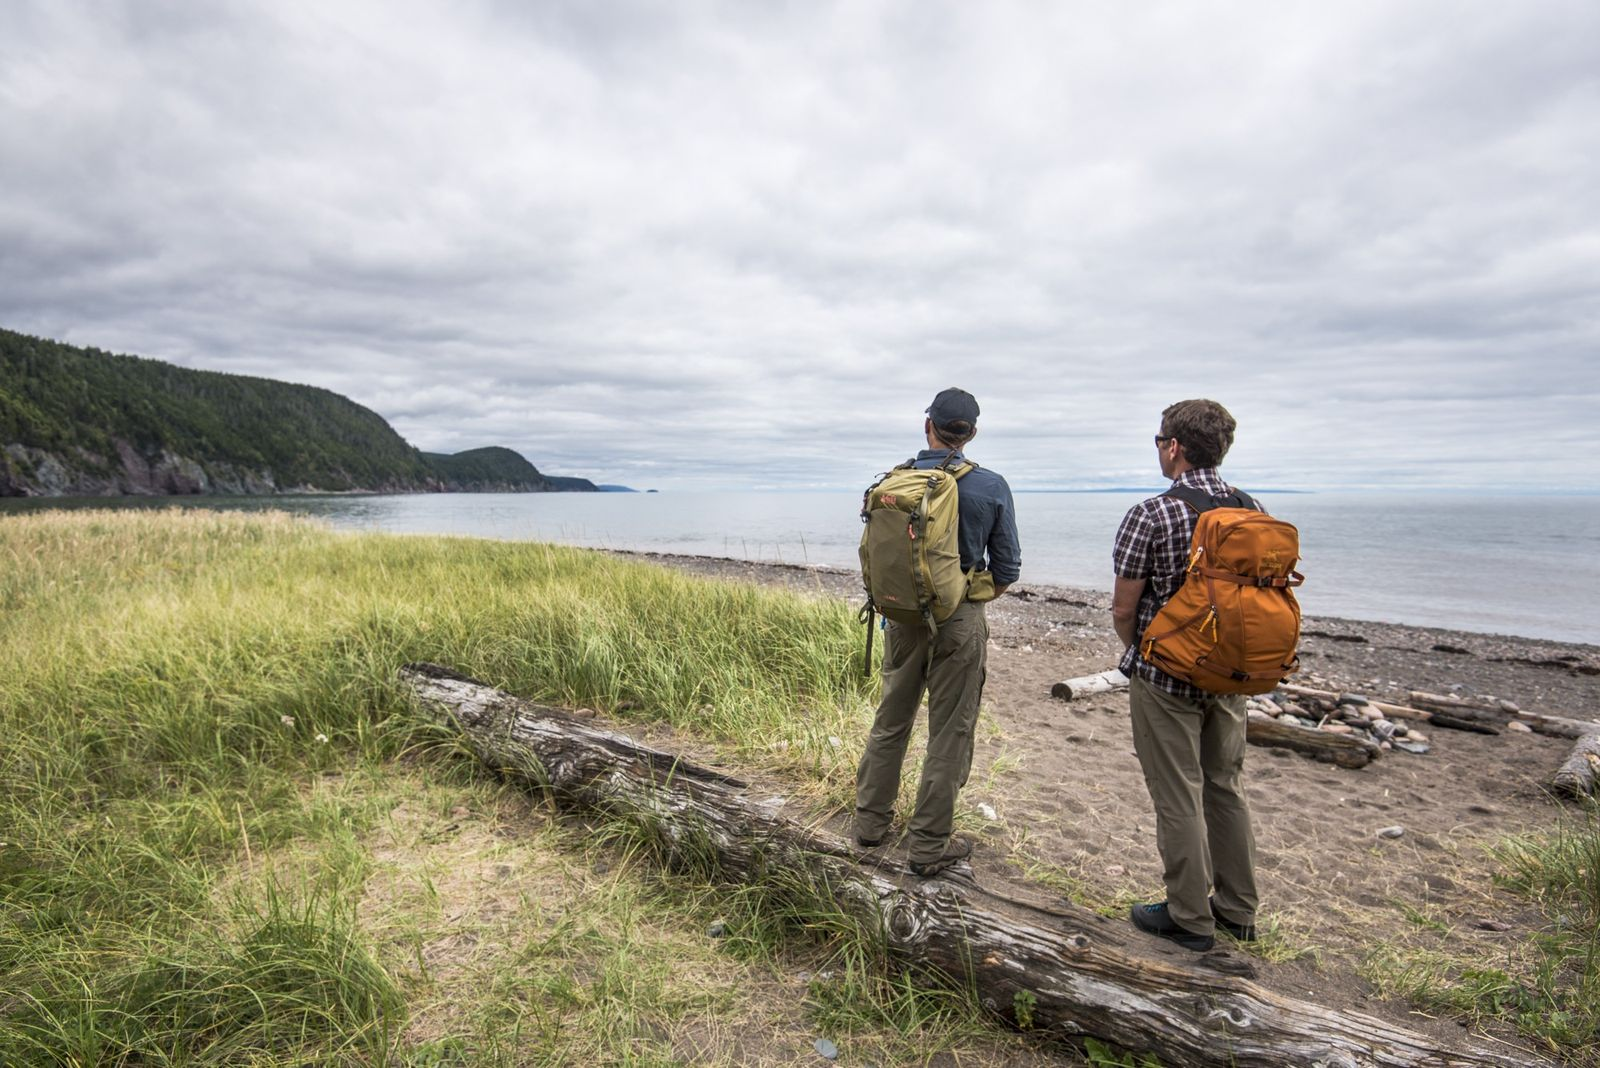 The Fundy Footpath offers access to the longest stretch of wilderness coastline on the Eastern seaboard.